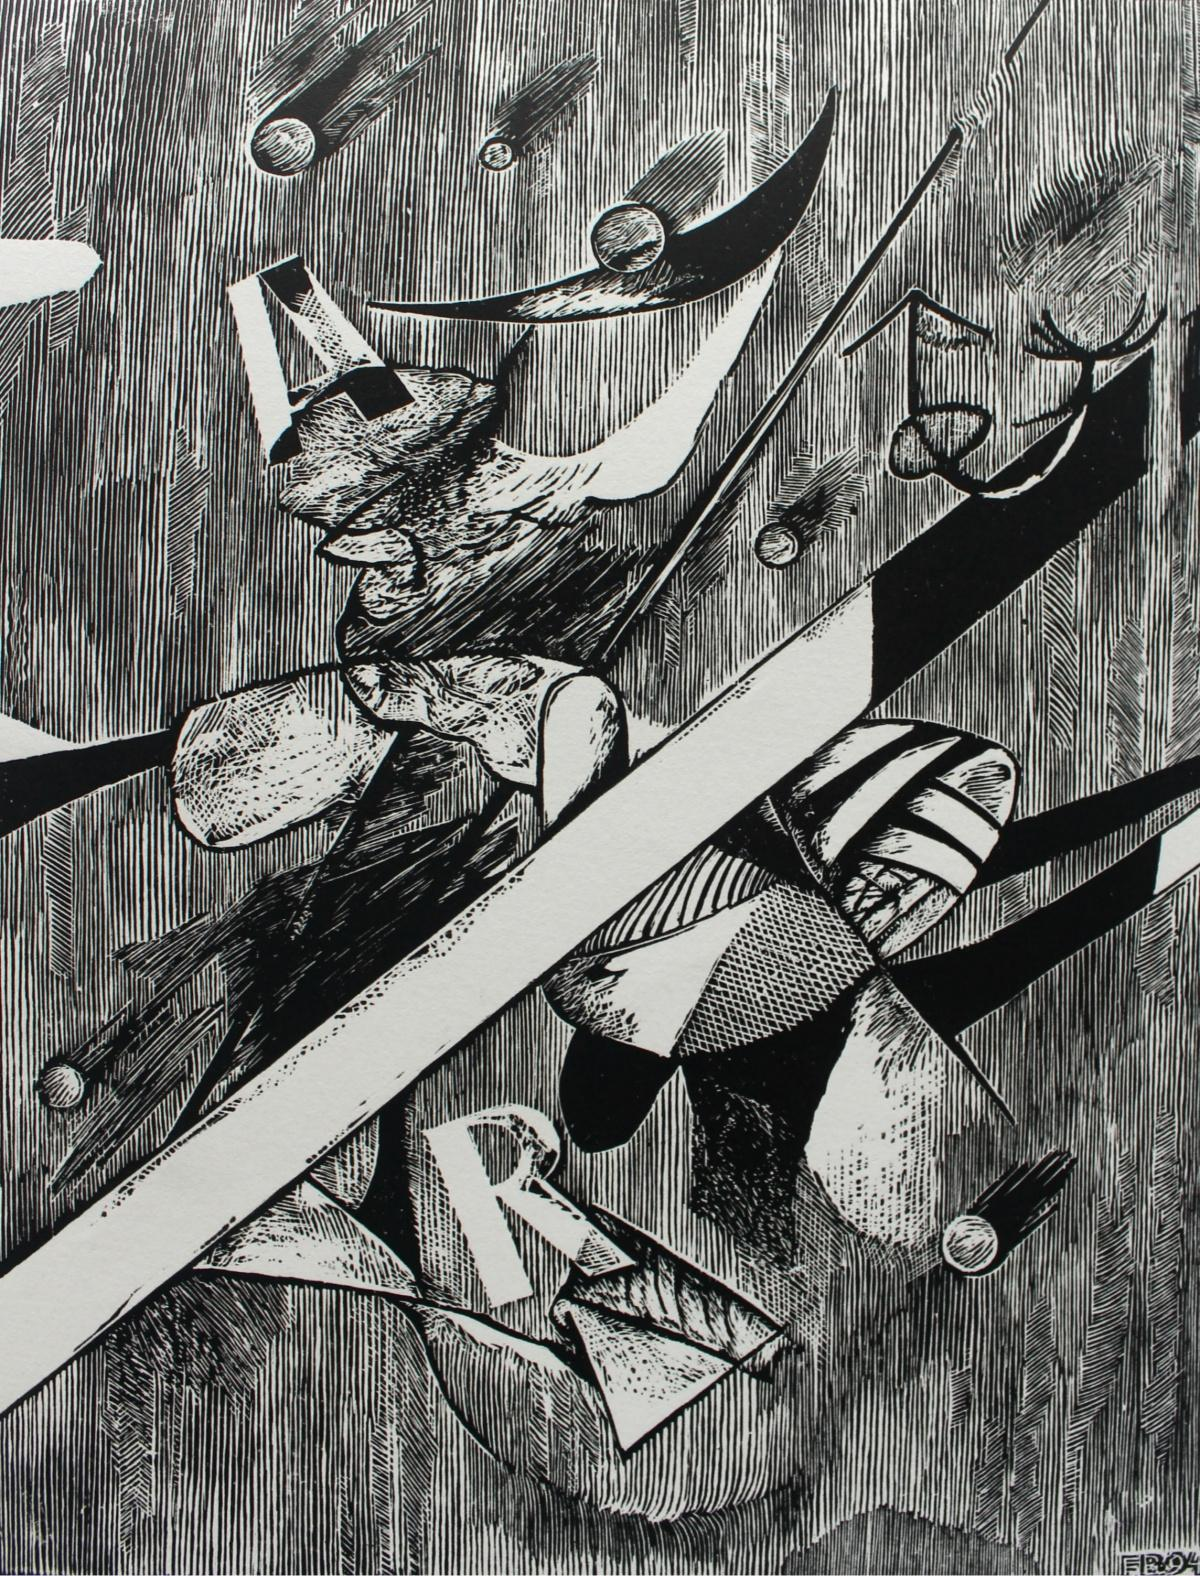 Between Sun and Moon - XX century, Black & White Woodcut Print, Abstraction